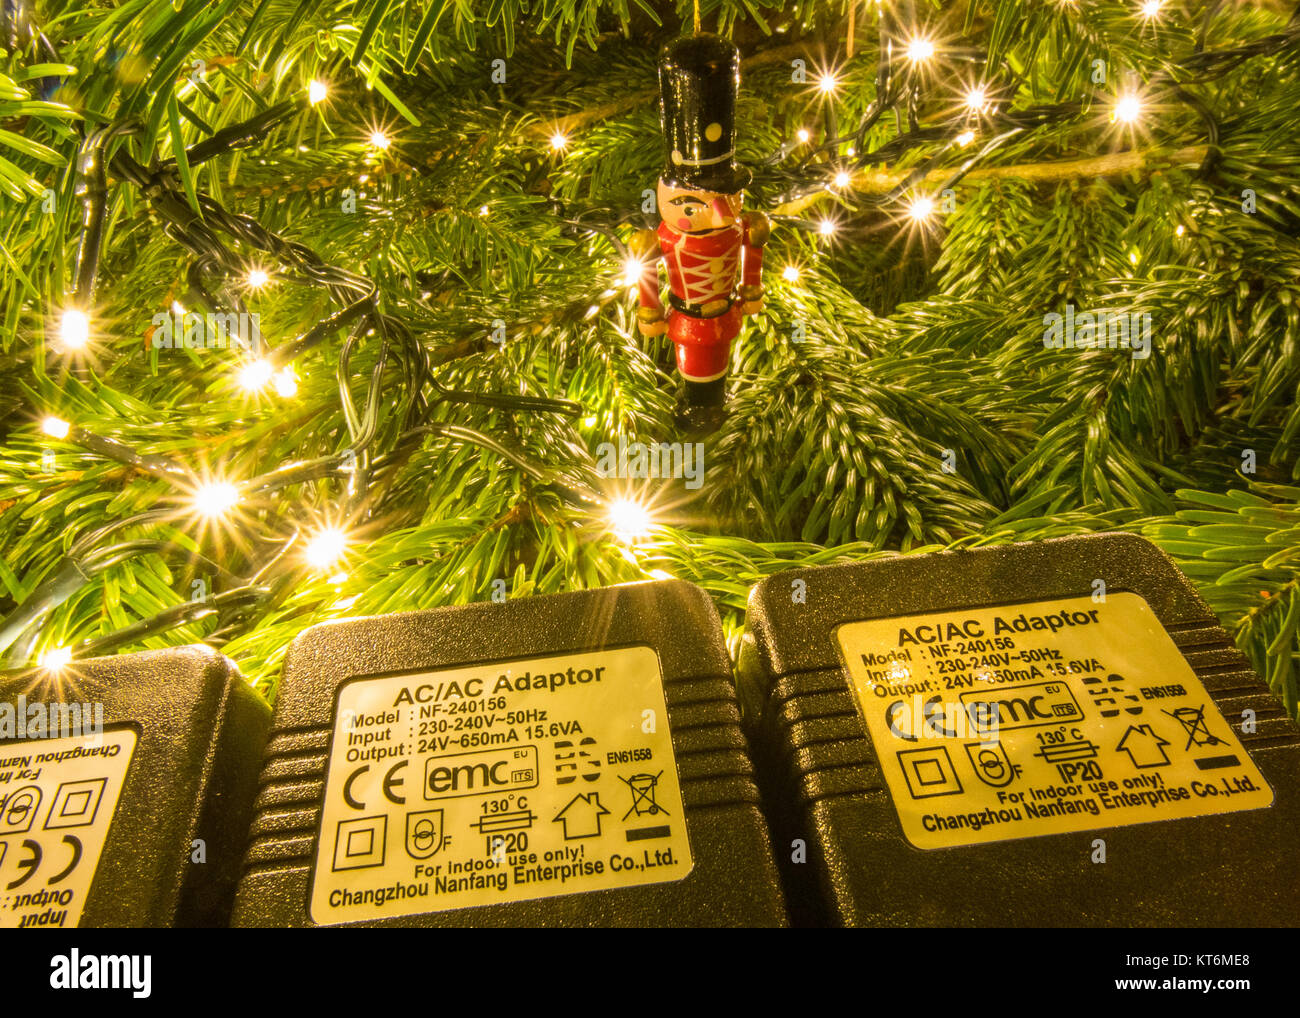 Christmas fairy lights showing IP 20 safety rating and other safety symbols - Stock Image